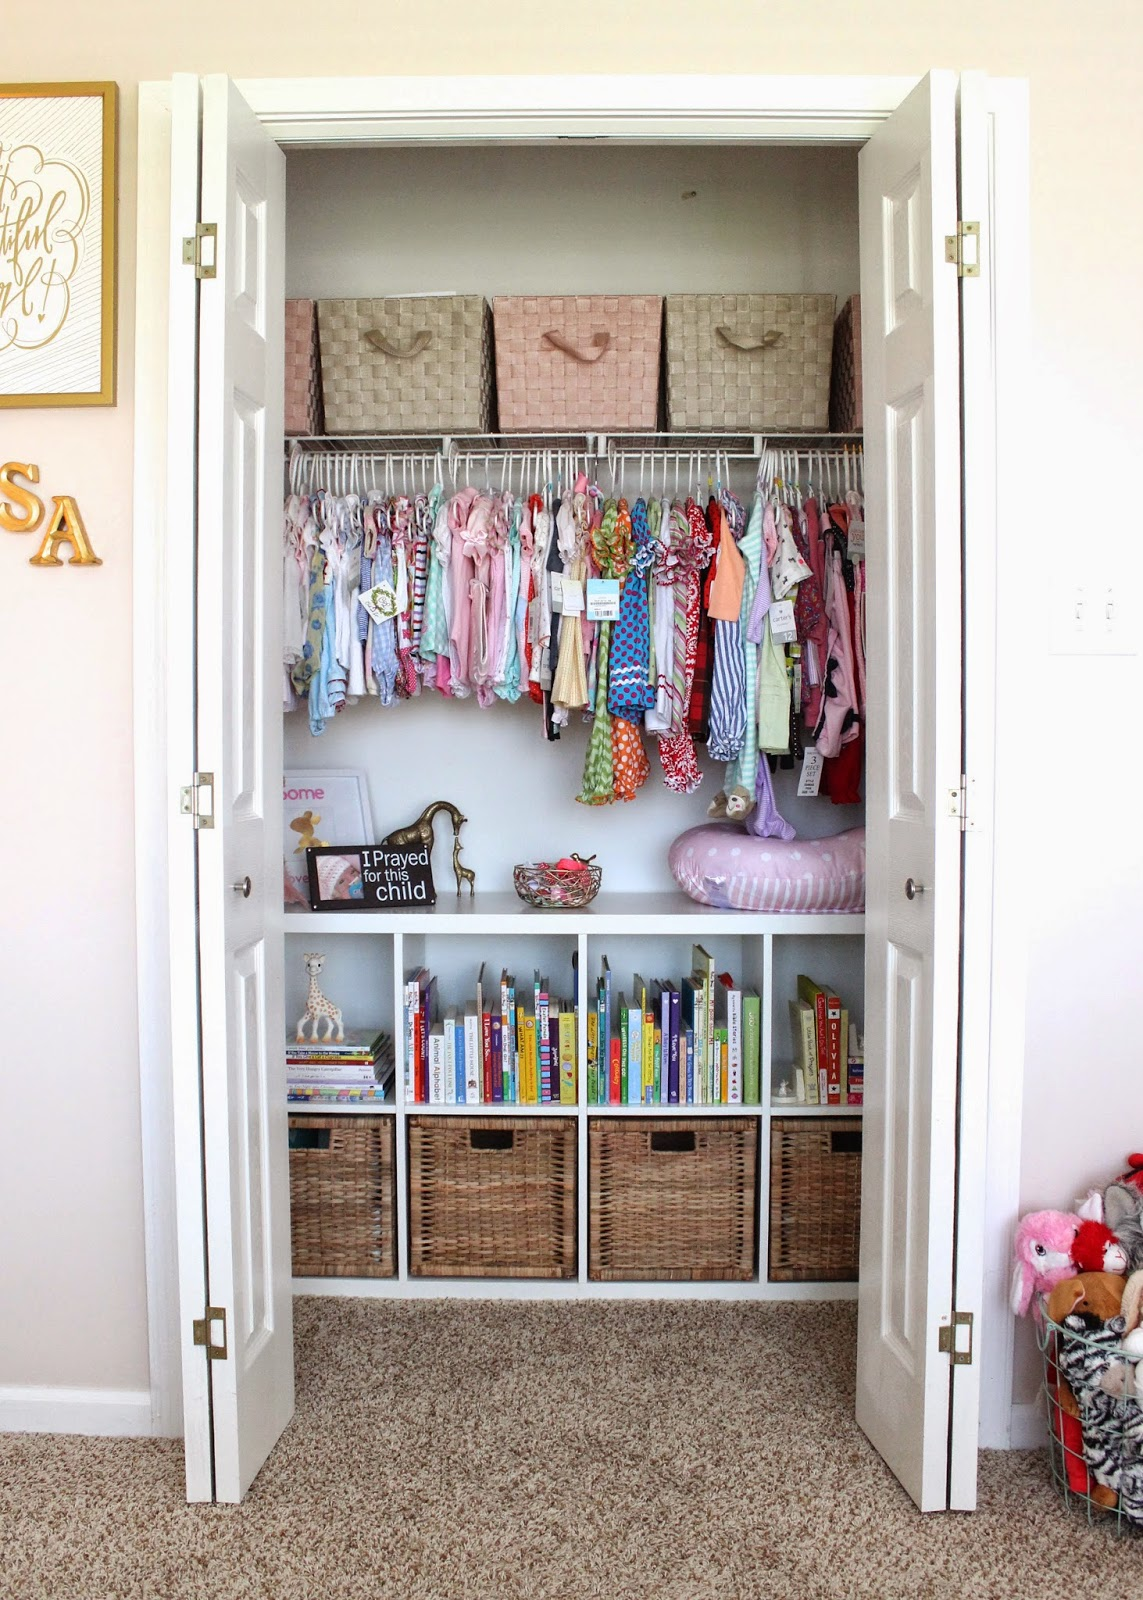 And Organized Baby Room Closet from http://dwellingandtelling.blogspot.com